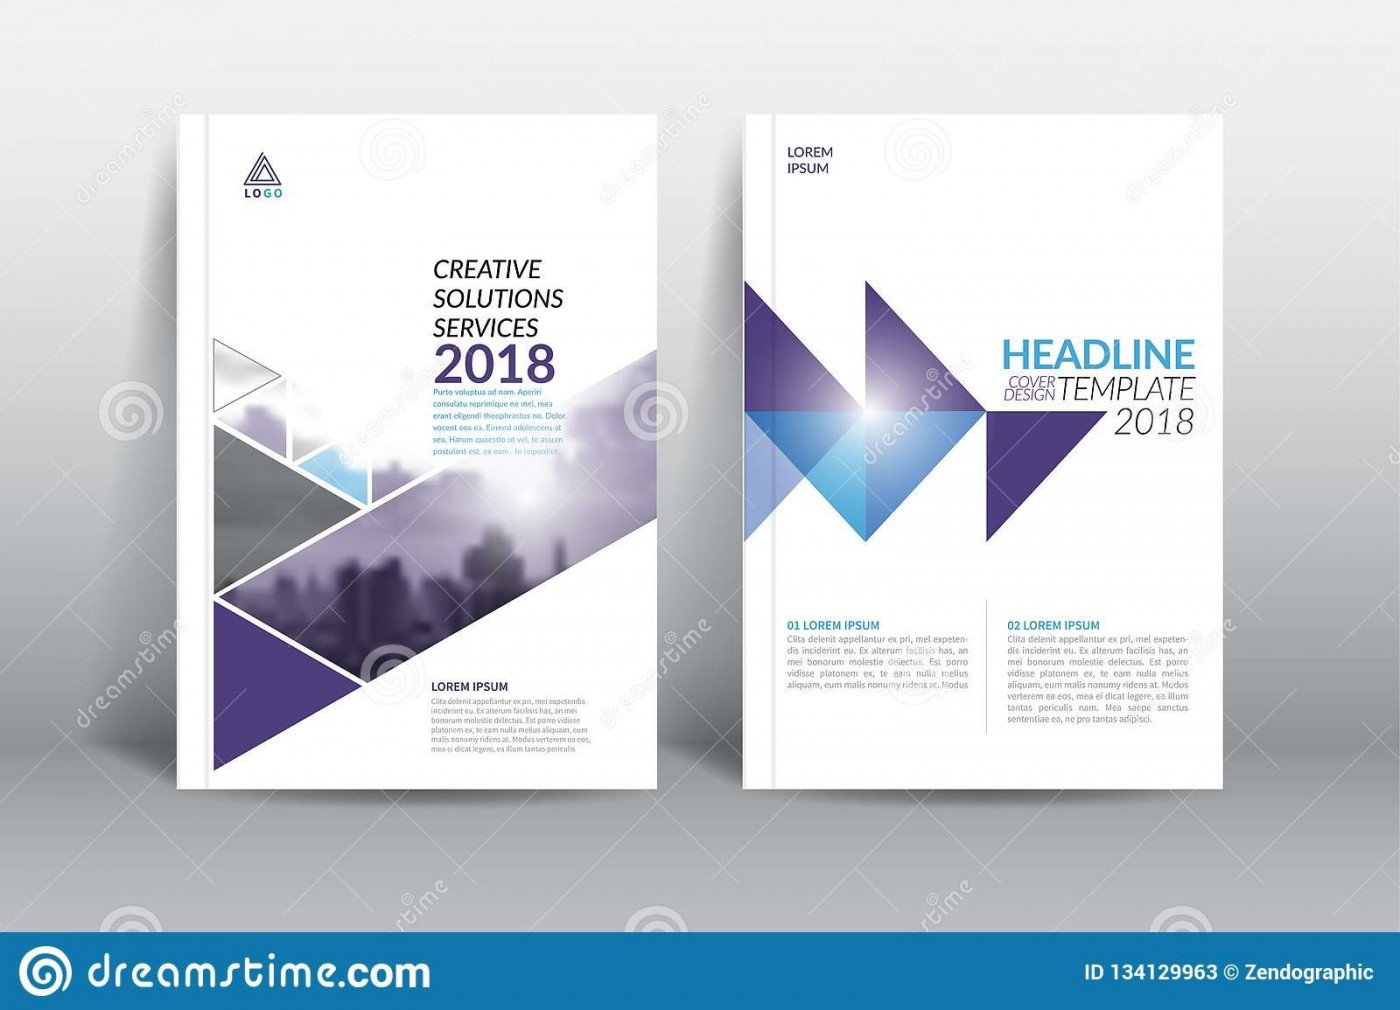 007 Frightening Free Download Annual Report Cover Design Template Example  In Word Page1400